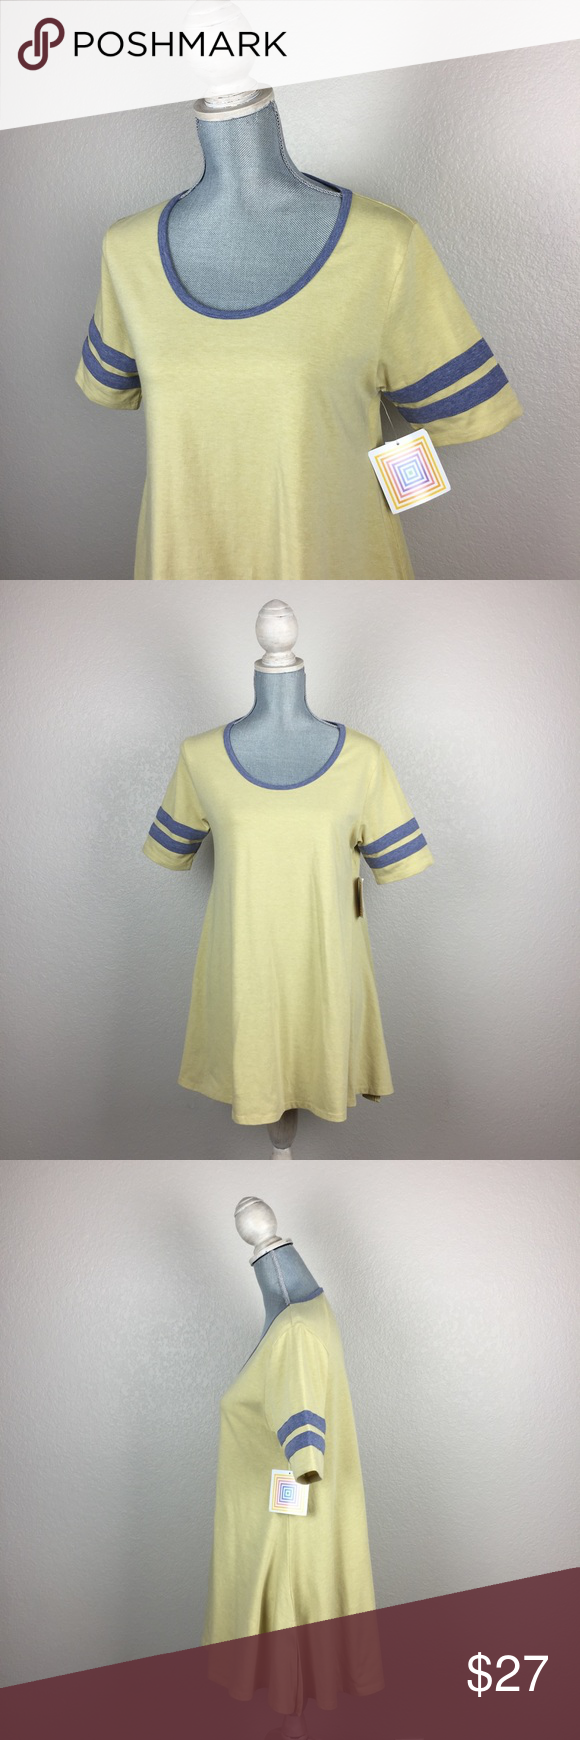 NWT LuLaRoe Perfect T in yellow with grey details New with Tags LuLaRoe Perfect T in yellow with grey neckline and detail on arm. very loose fitting. stretchy fabric. Fabric: cotton, polyester, spandex. No holes, stains, rips, tears, or pilling noted. Reasonable offers accepted. No trades please :) LuLaRoe Tops Tunics